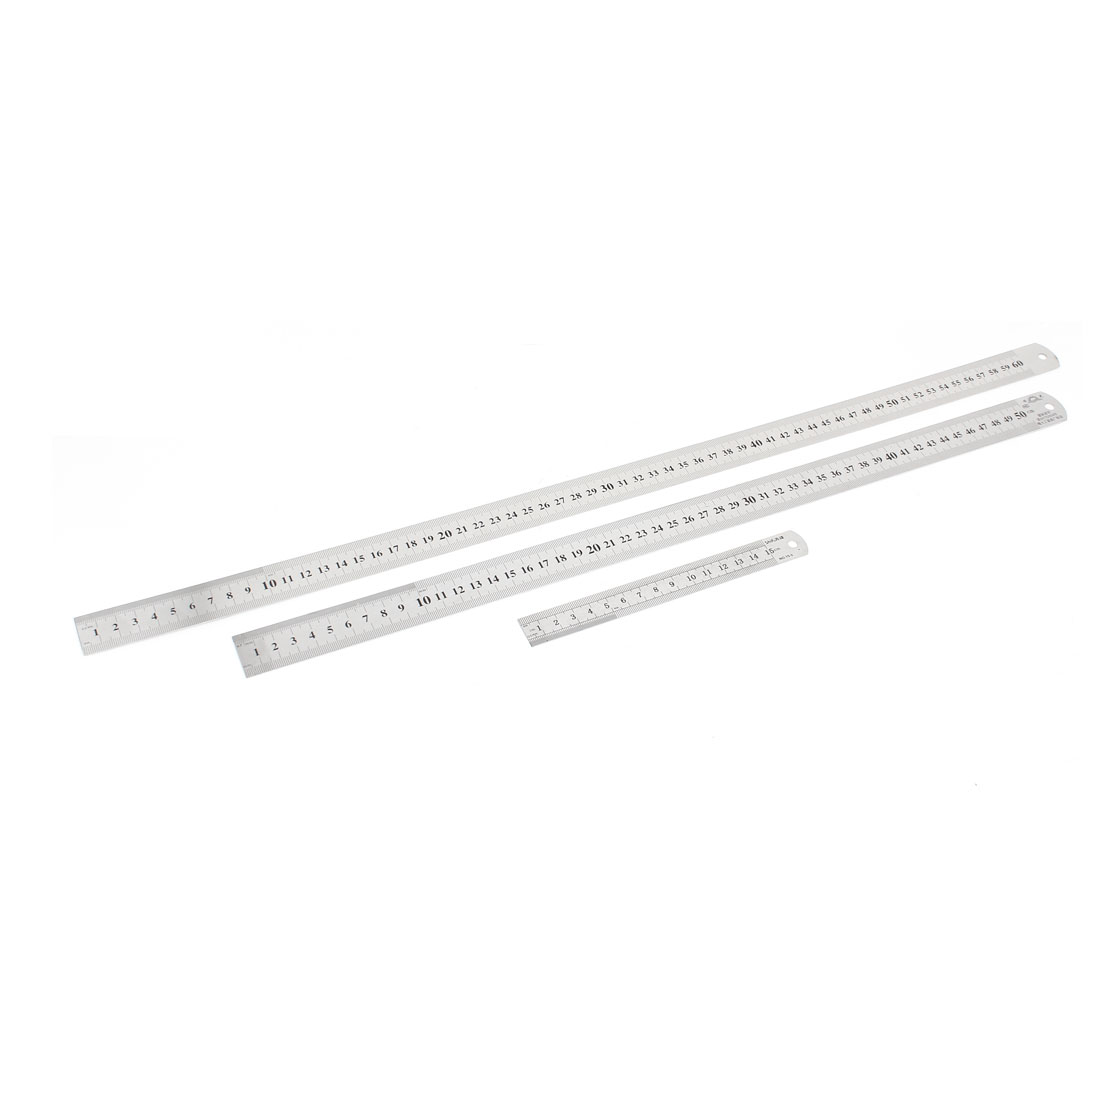 3 in 1 15cm 50cm 60cm Double Sides Students Metric Straight Ruler Silver Tone